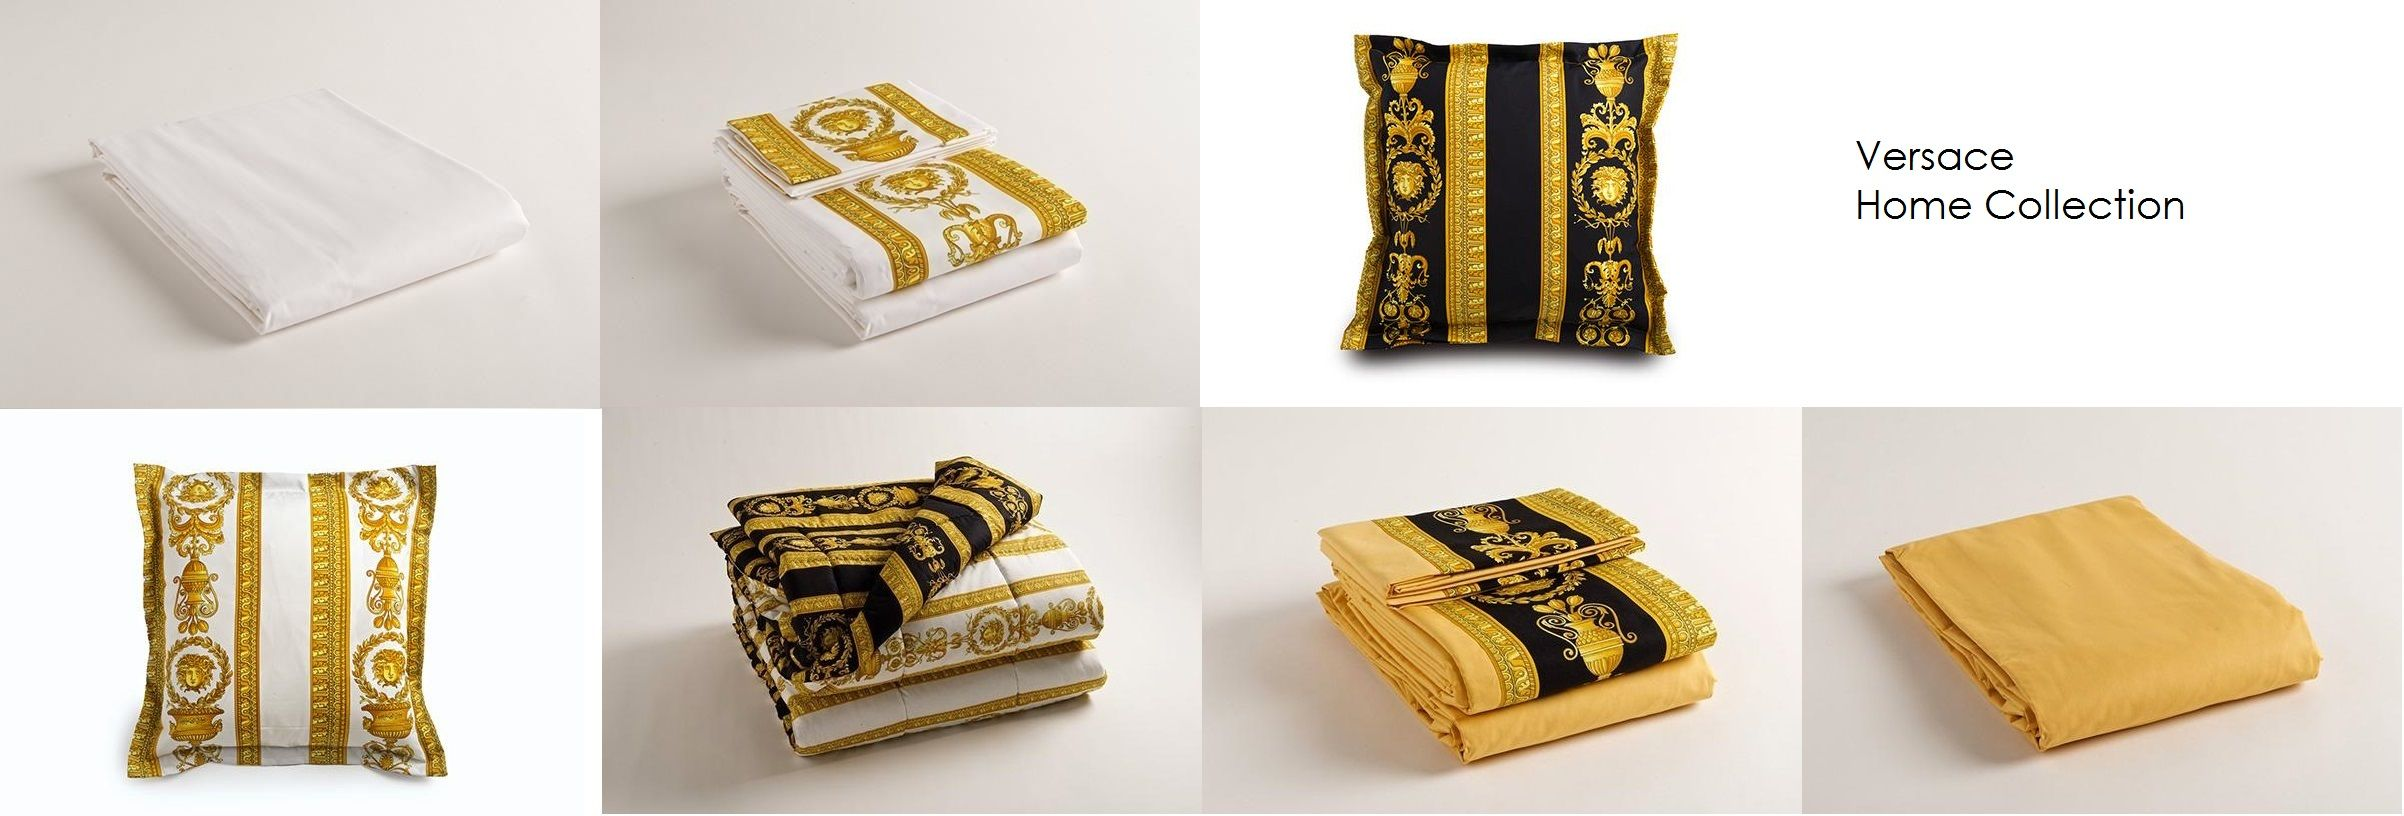 Versace home collection bed sheet and blanket